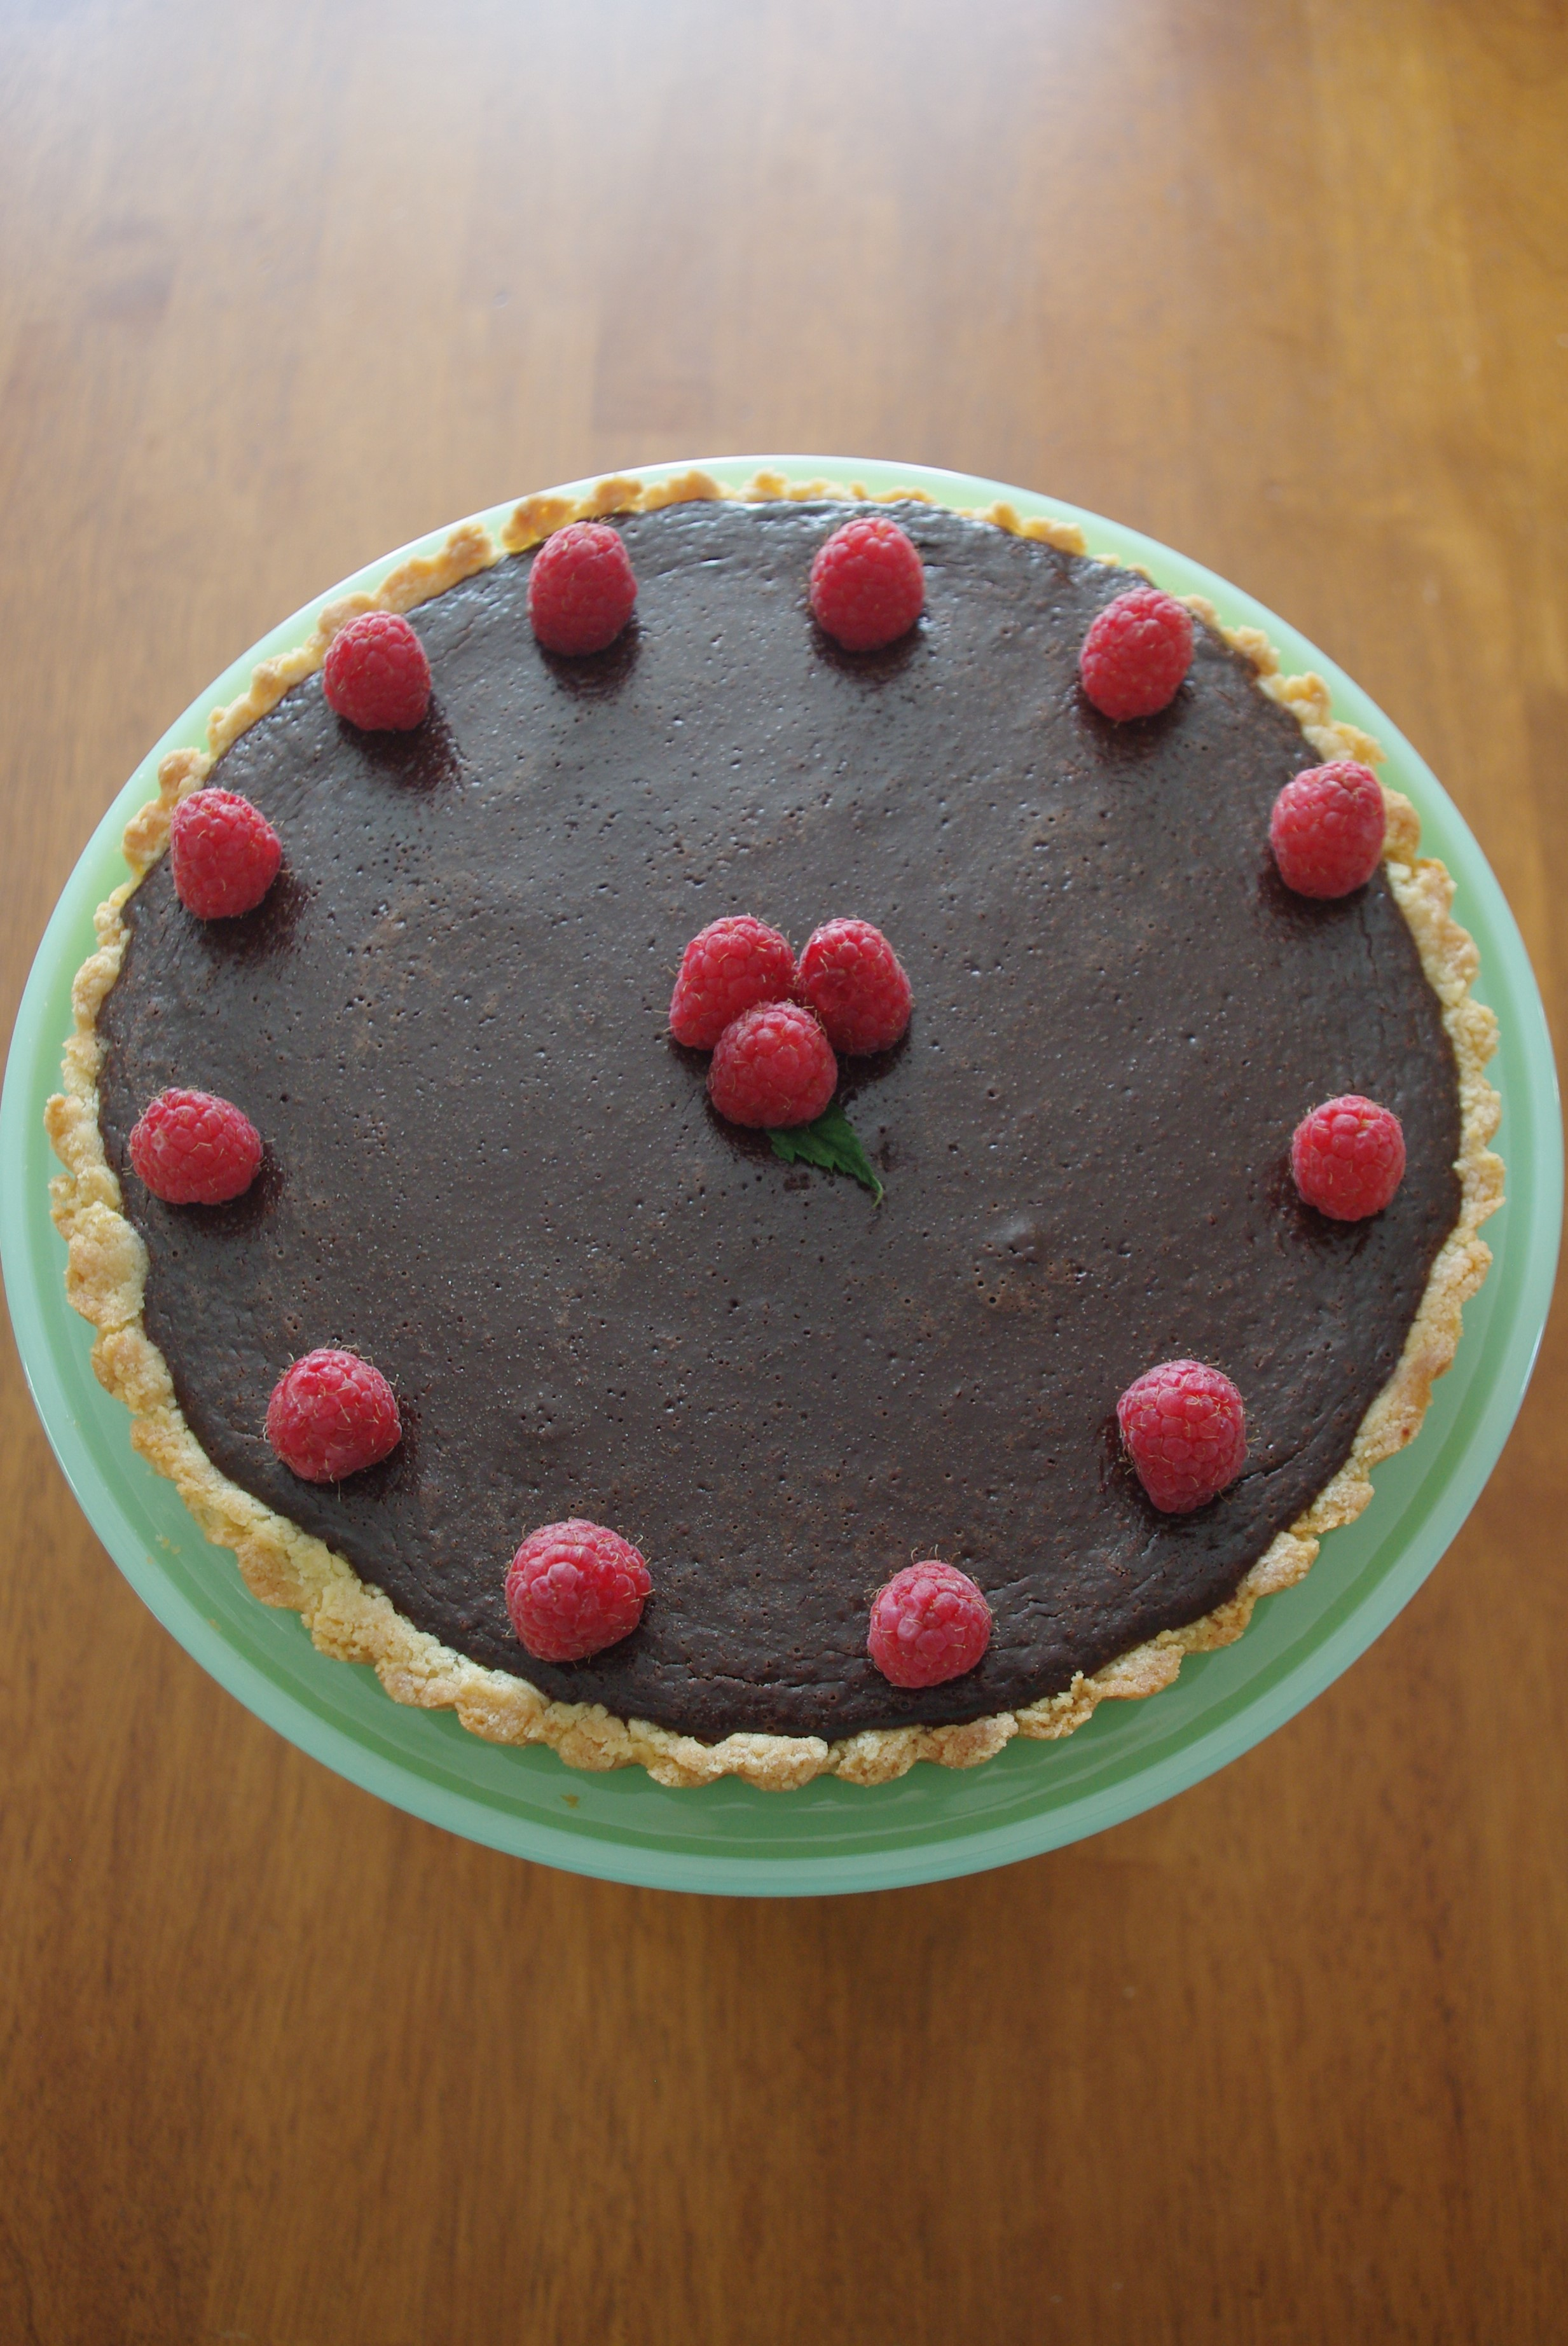 Chocolate Raspberry Tart with Shortbread Crust